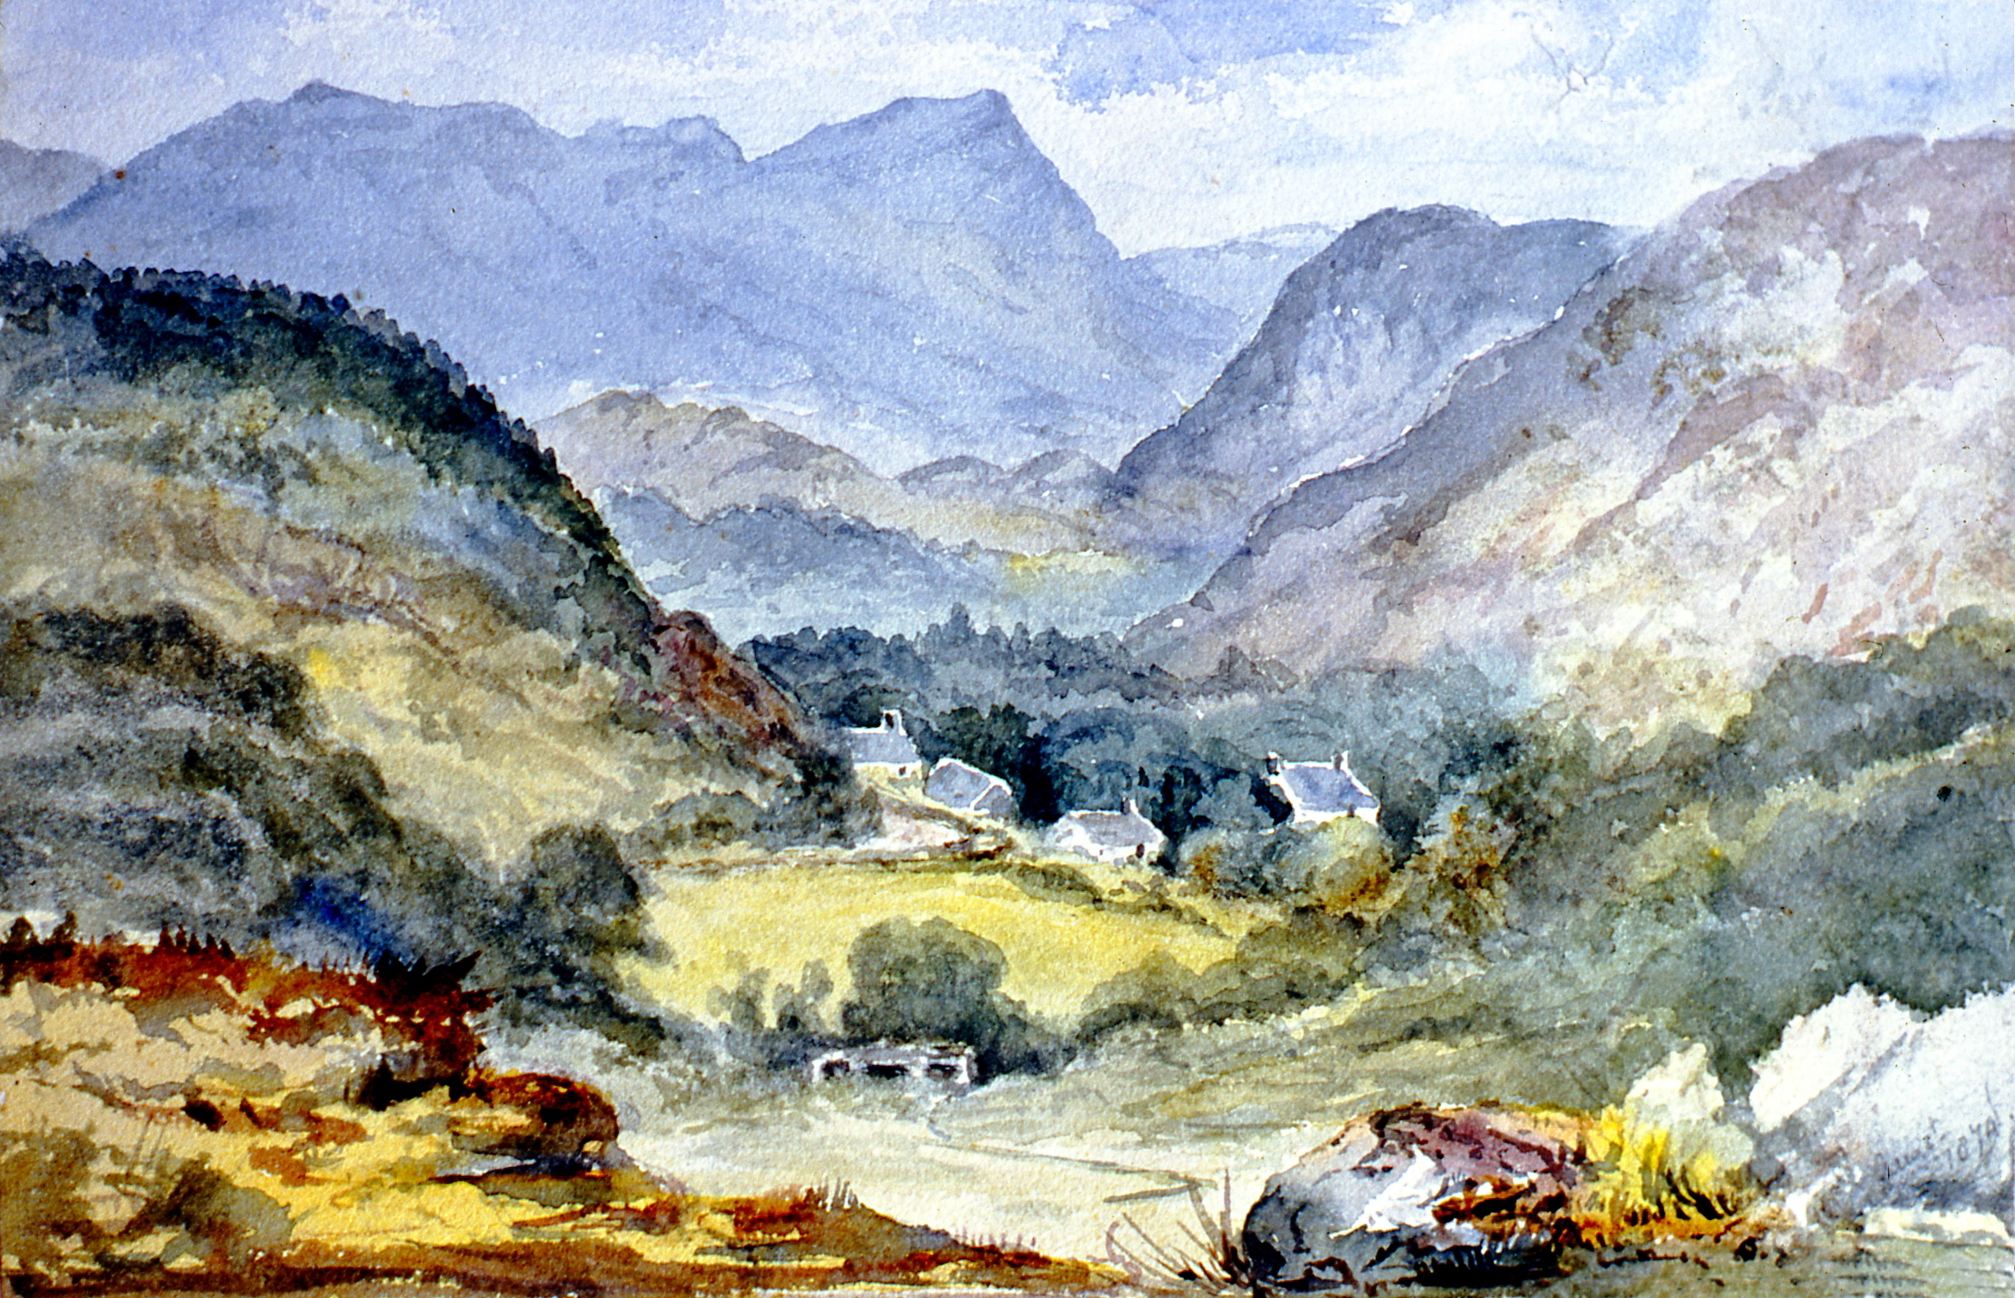 "Valley of the Artro, Ilaubeds (?) Marionetshire North Wales , August 1874, Julia Bullock Webster, watercolour on paper, 6 1/4""  x 9 3/4"", 2003.02.42, gift of The Grist Mill at Keremeos"